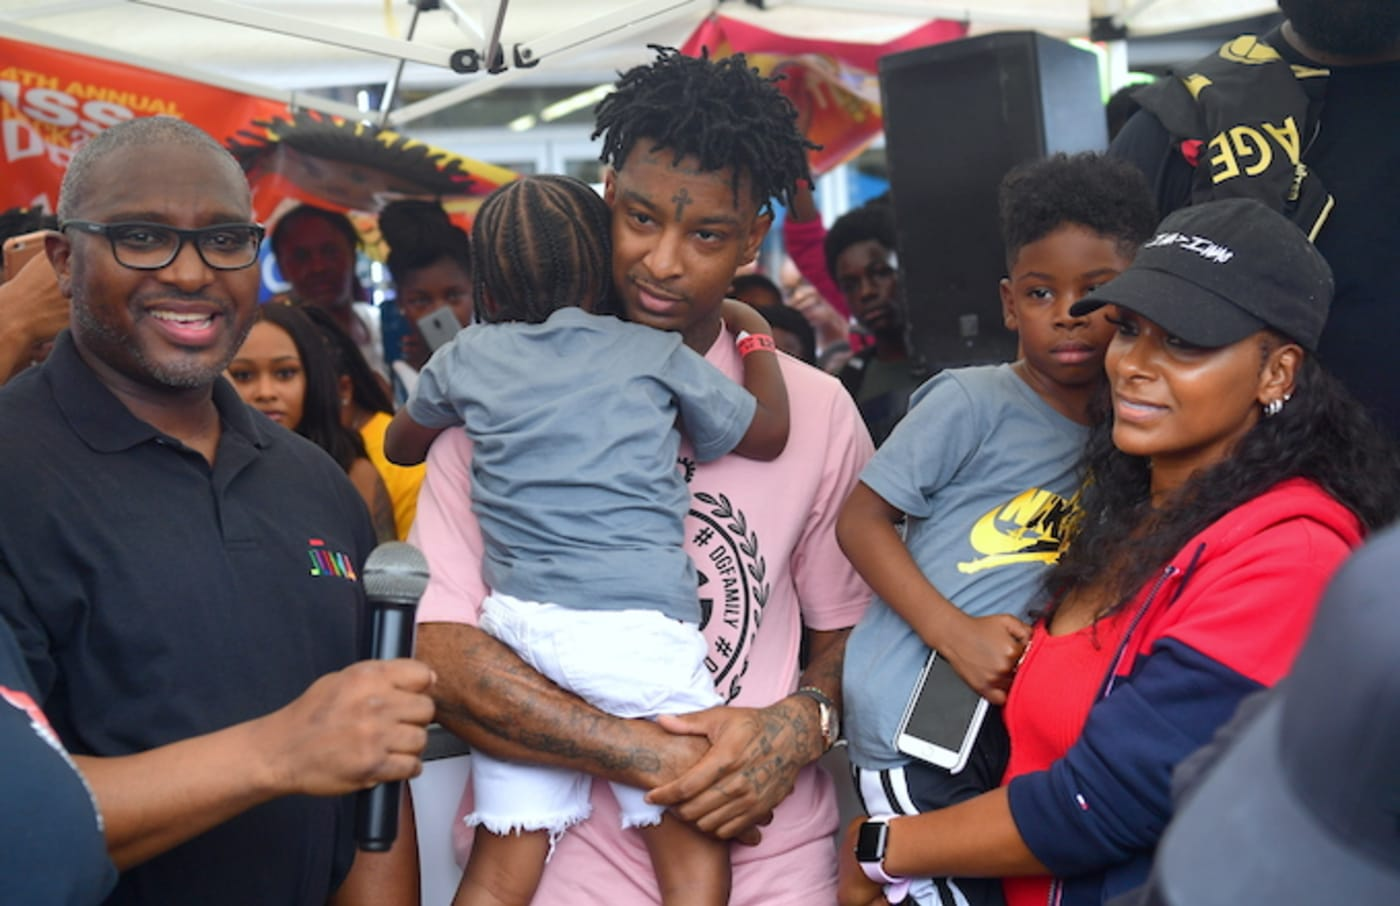 21 savage issa back 2 school drive 4th annual